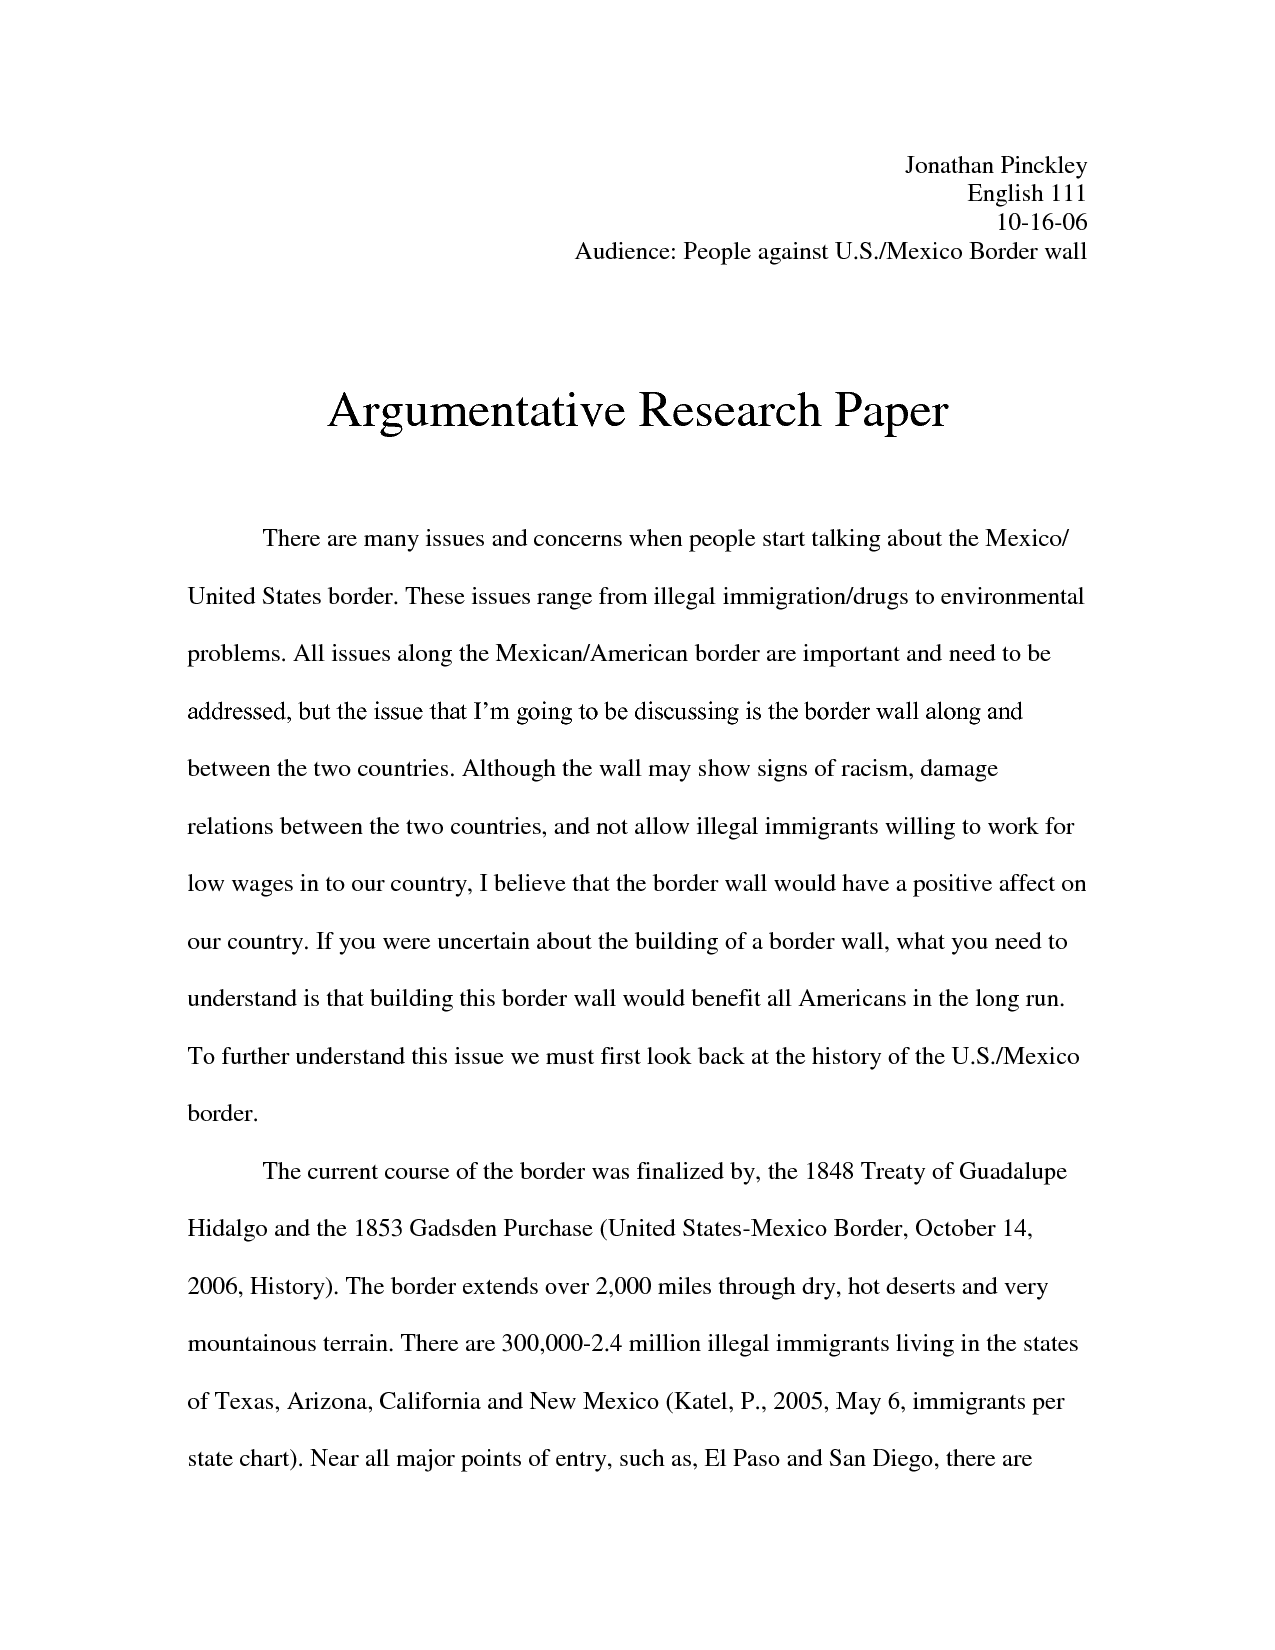 014 Uncategorized Debate20y Argumentative Thesis High School Topics Sentence Starters Outline Worksheet Structure20 For Research Rare A Paper Medical Full